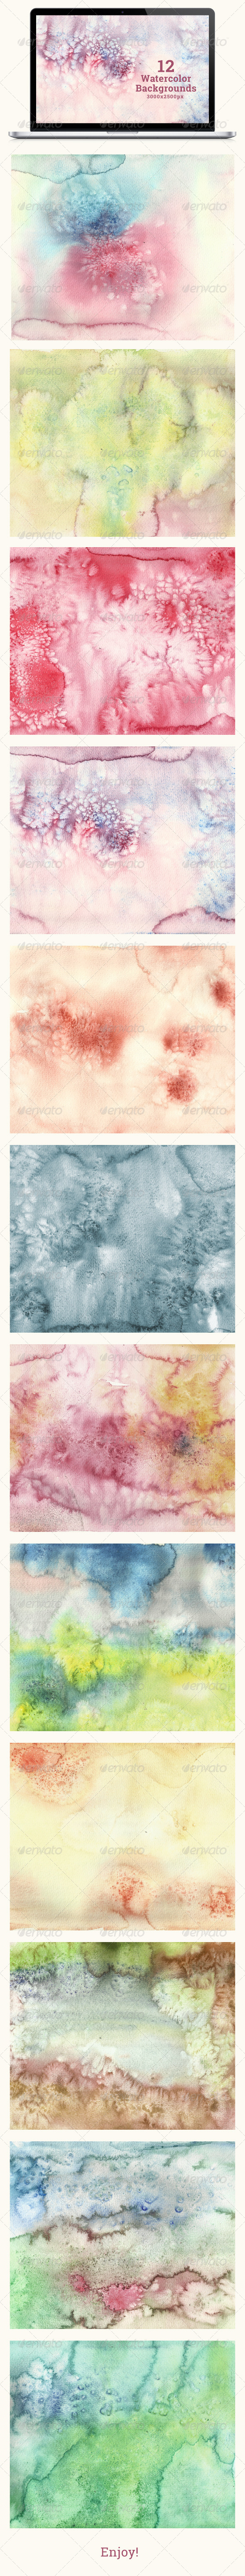 GraphicRiver Set of 12 Watercolor Backgrounds 6954744